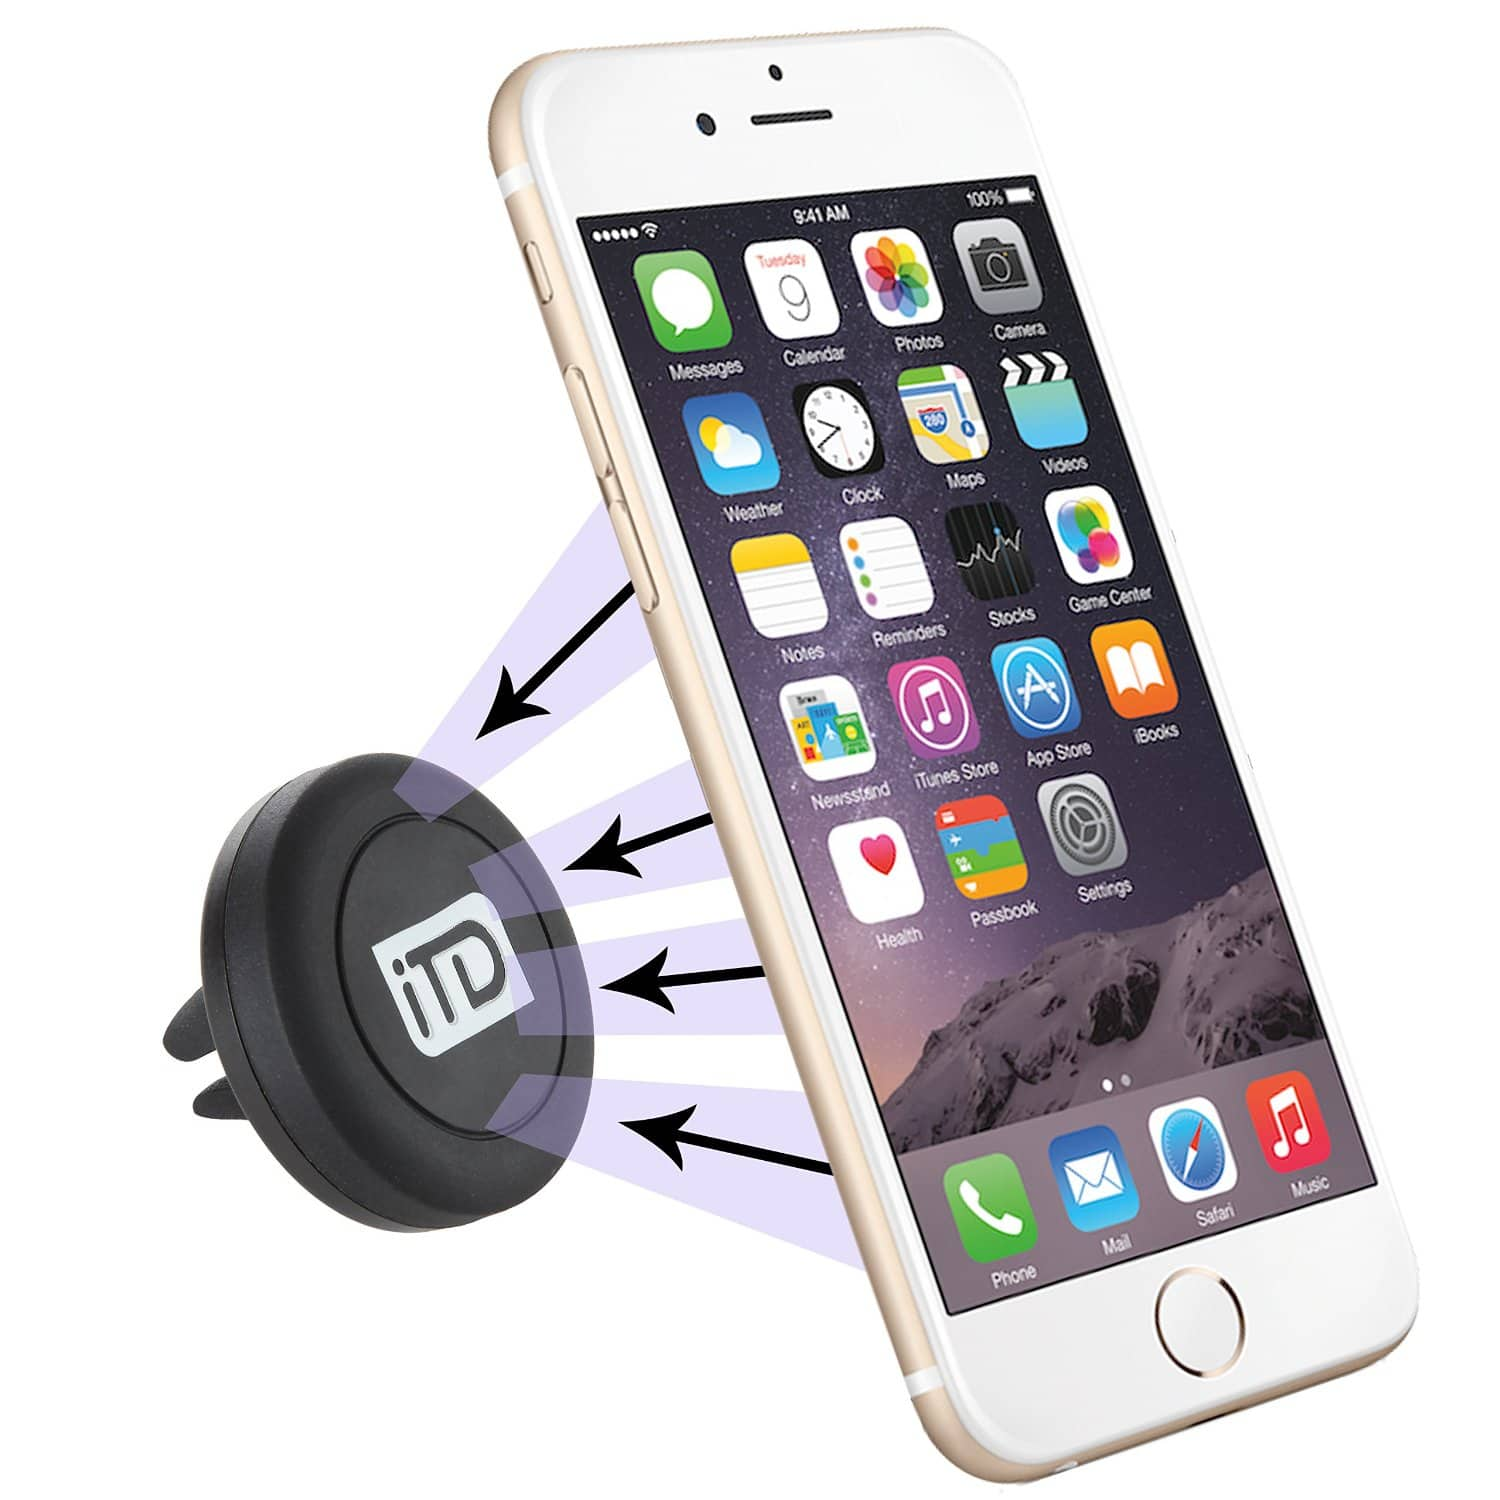 iTD Gear Magnetic Windshield Car Mount Holder $4 @ Amazon